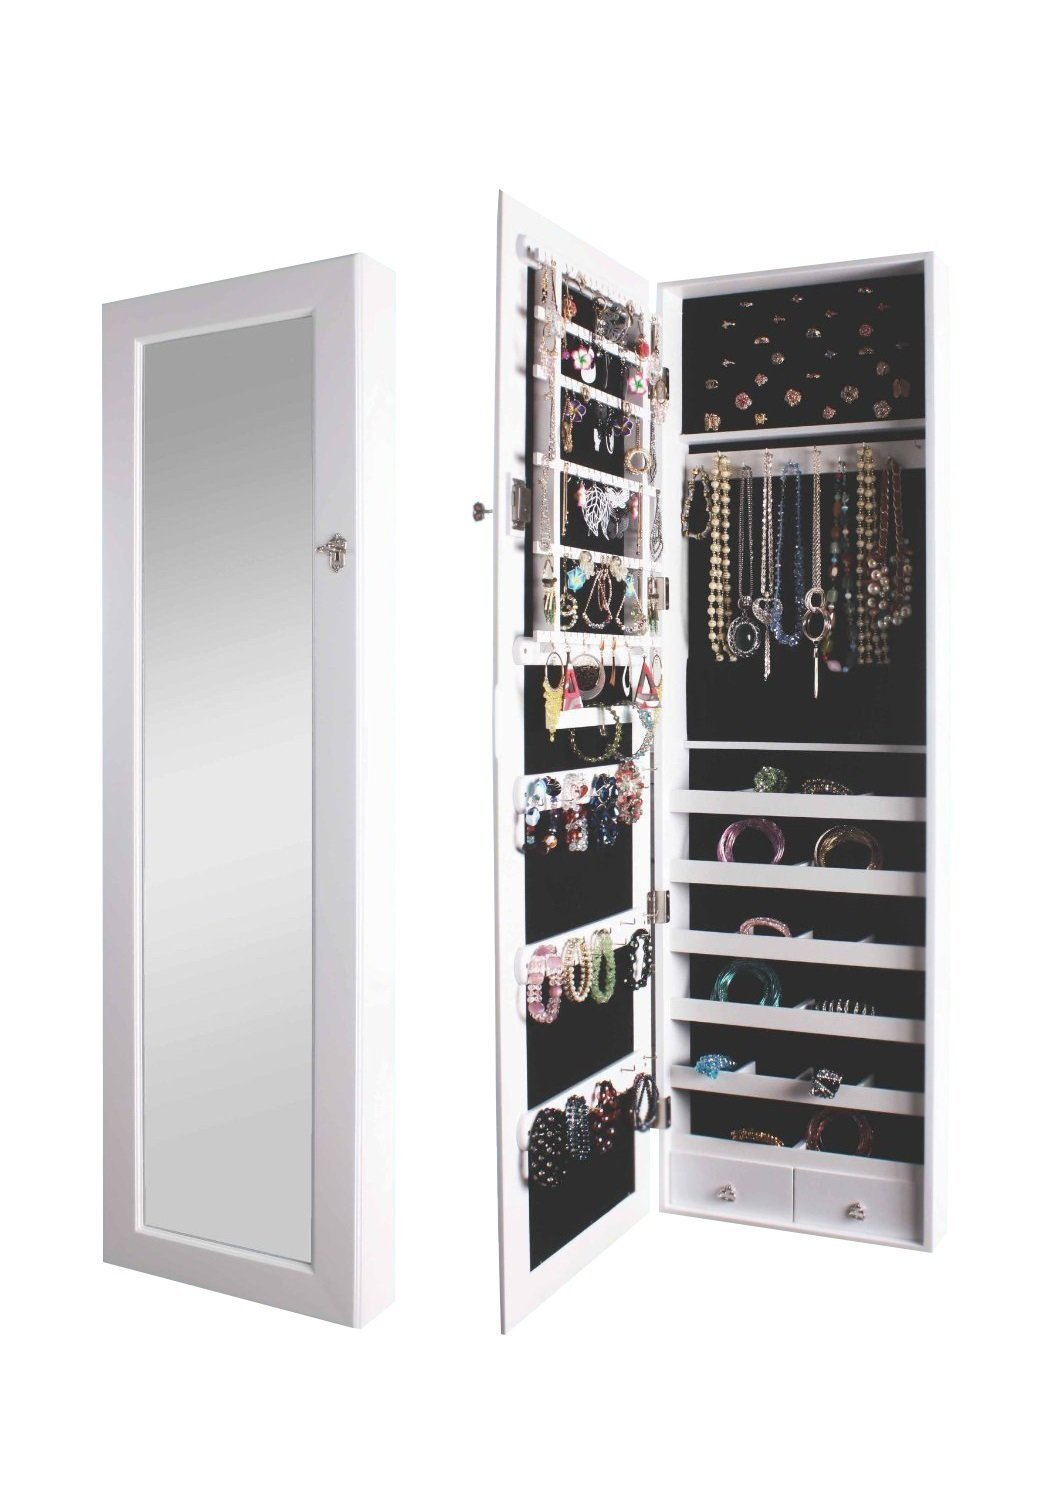 Wall jewelry cabinet from Amazon.